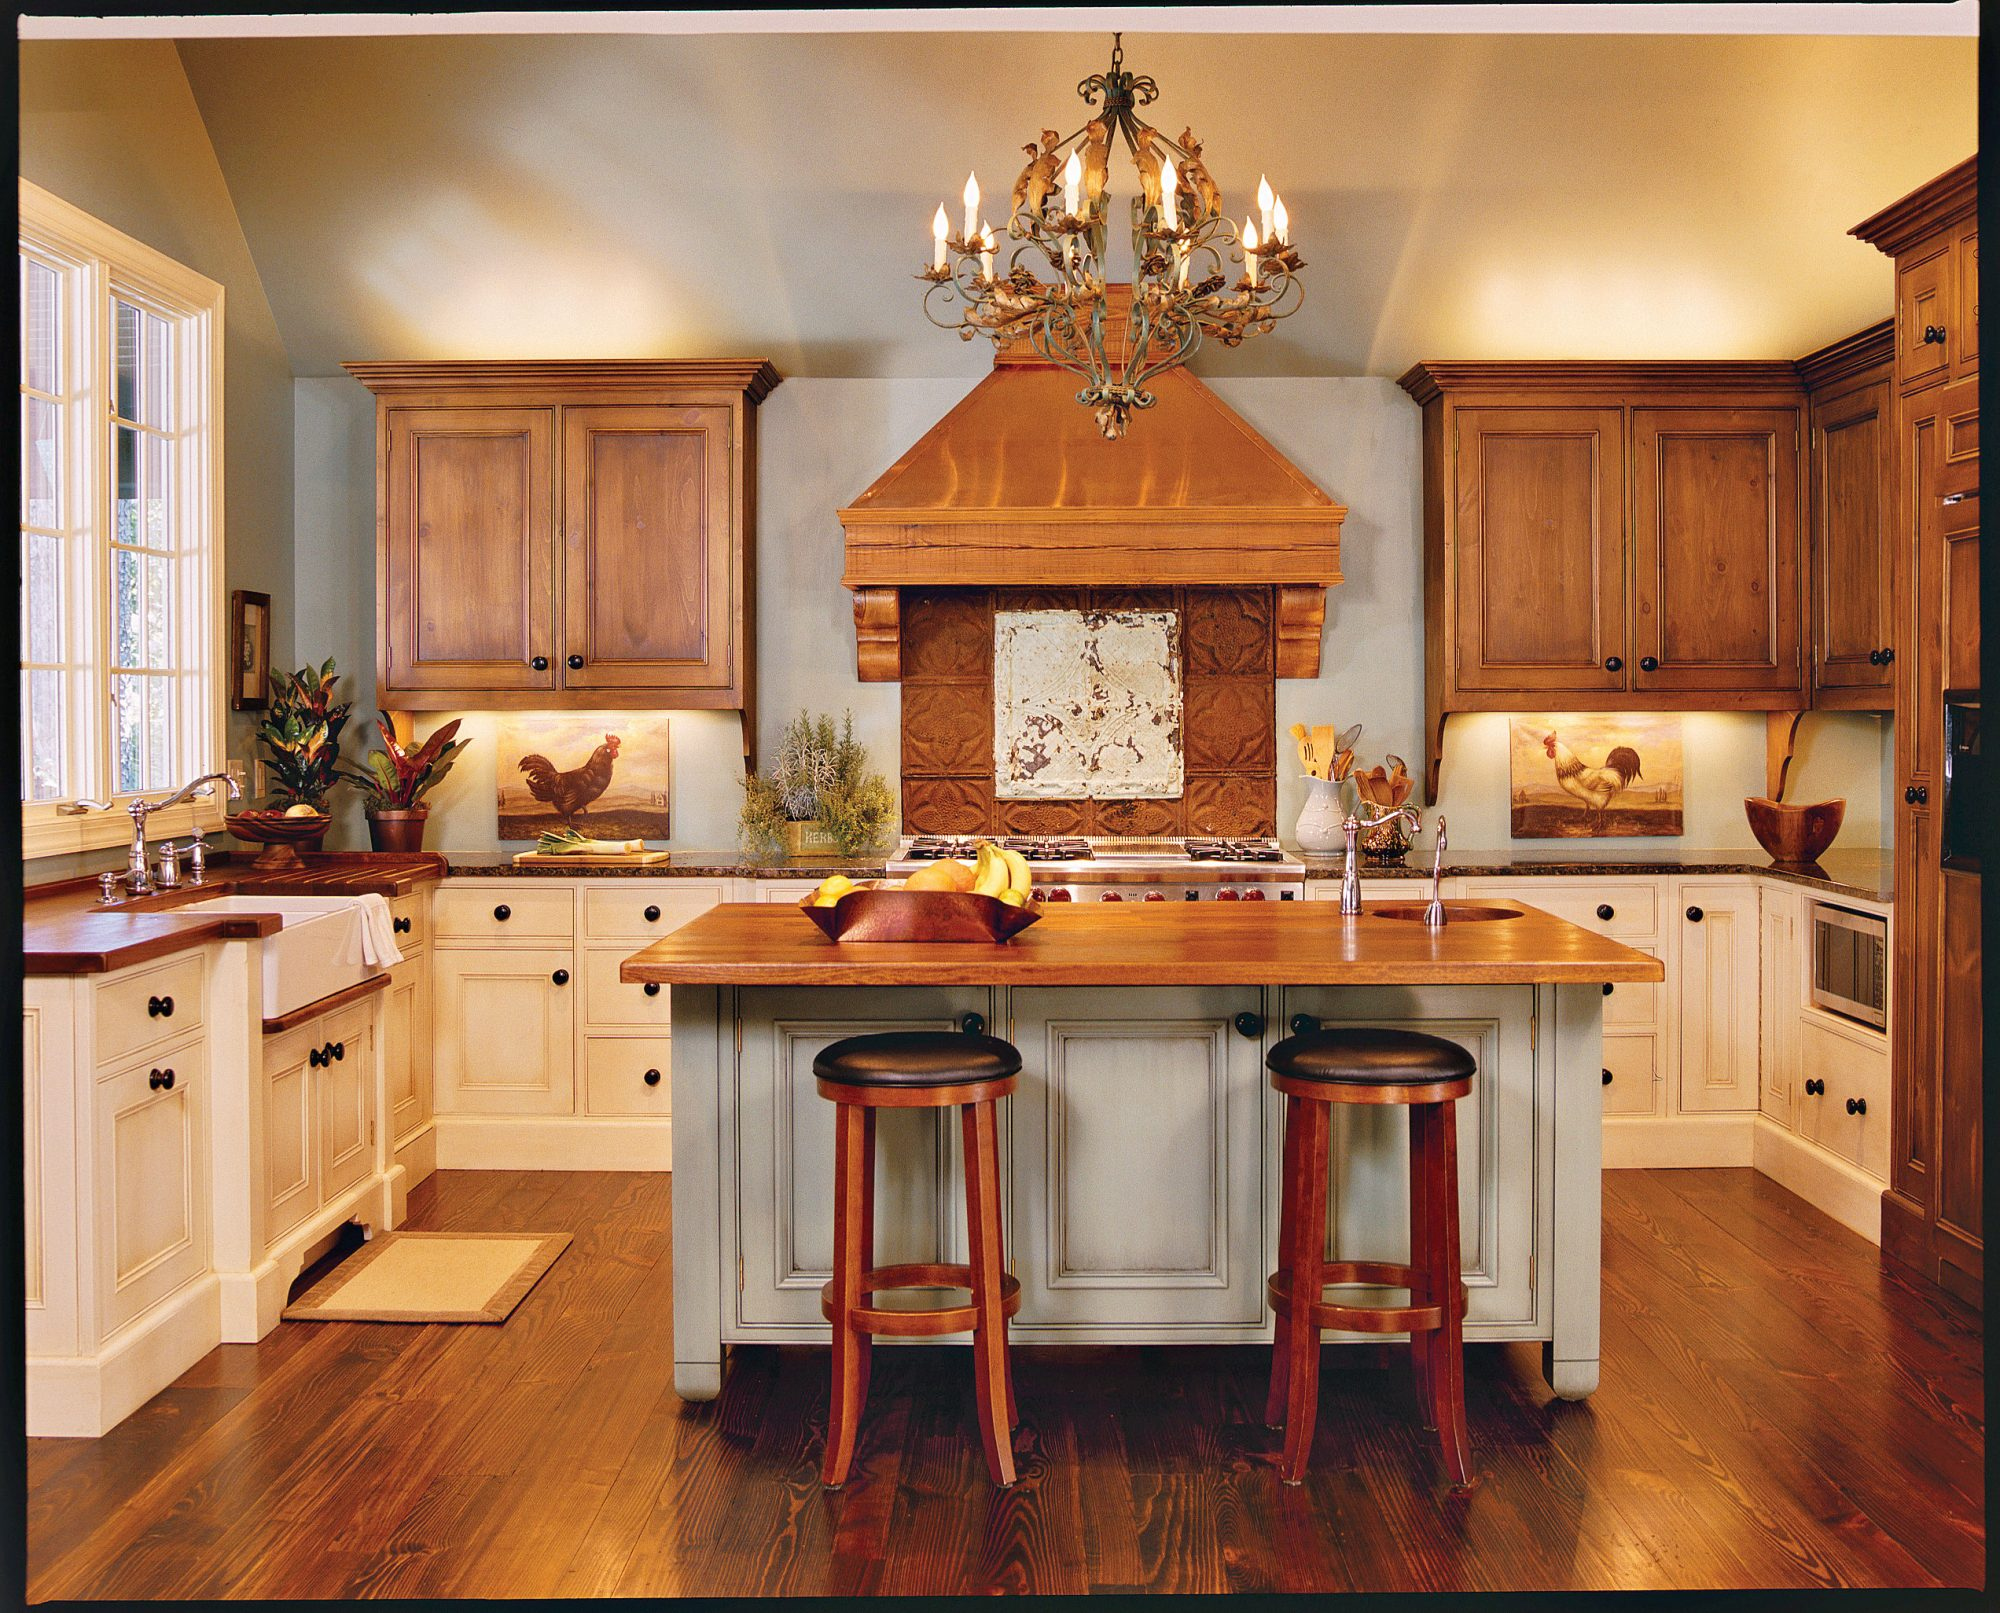 Warm & Inviting Kitchen